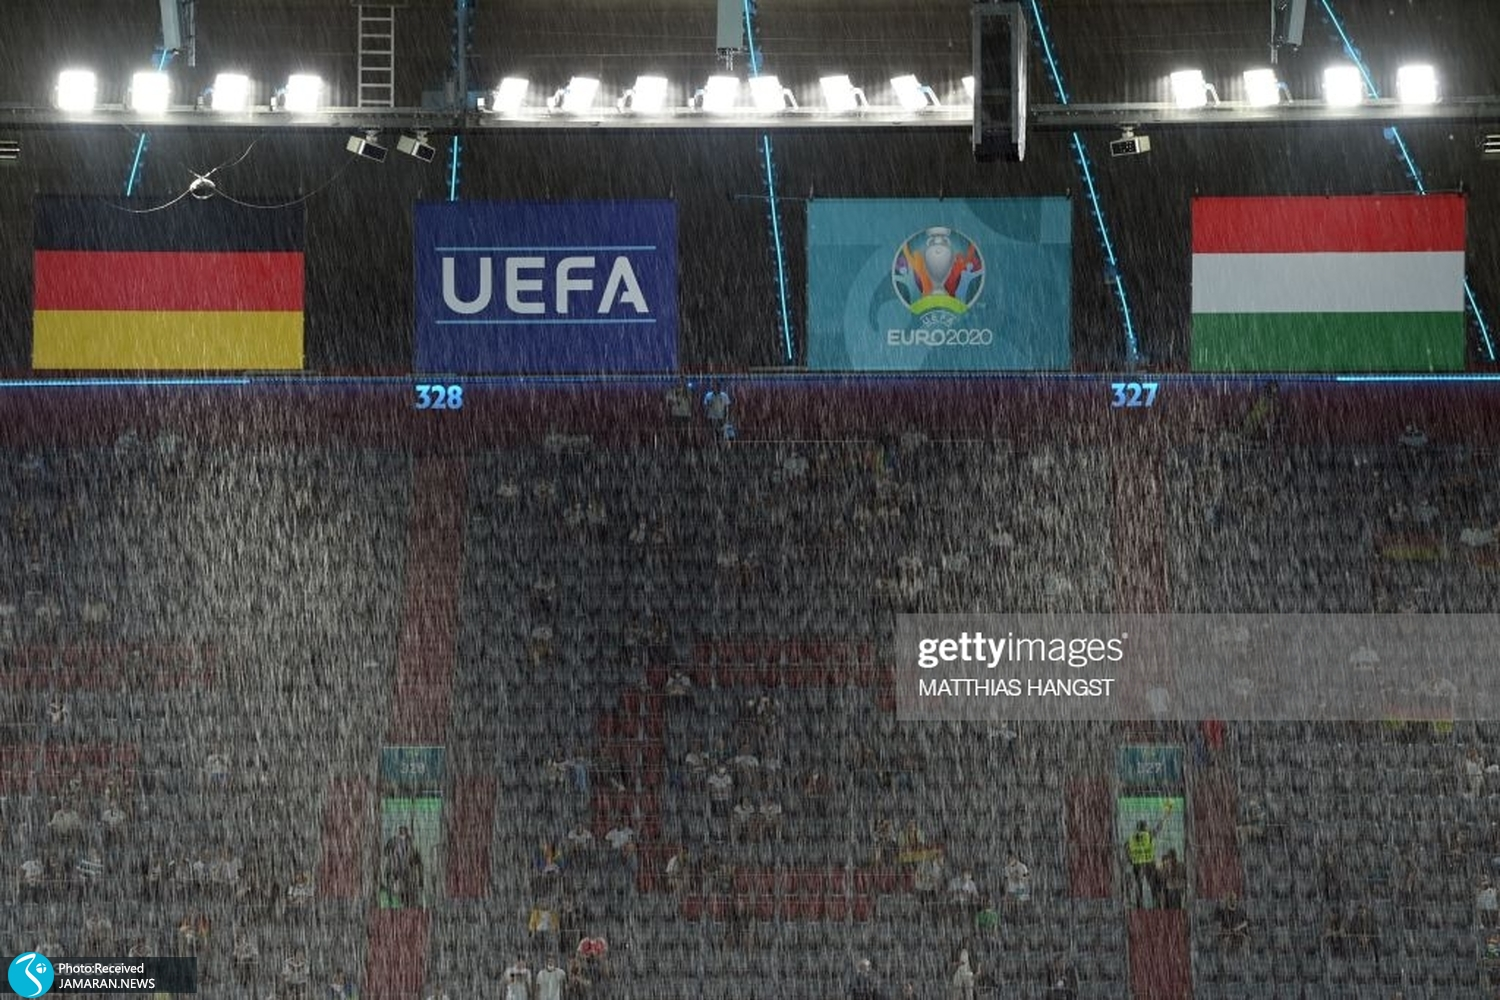 gettyimages-1233615047-1024x1024